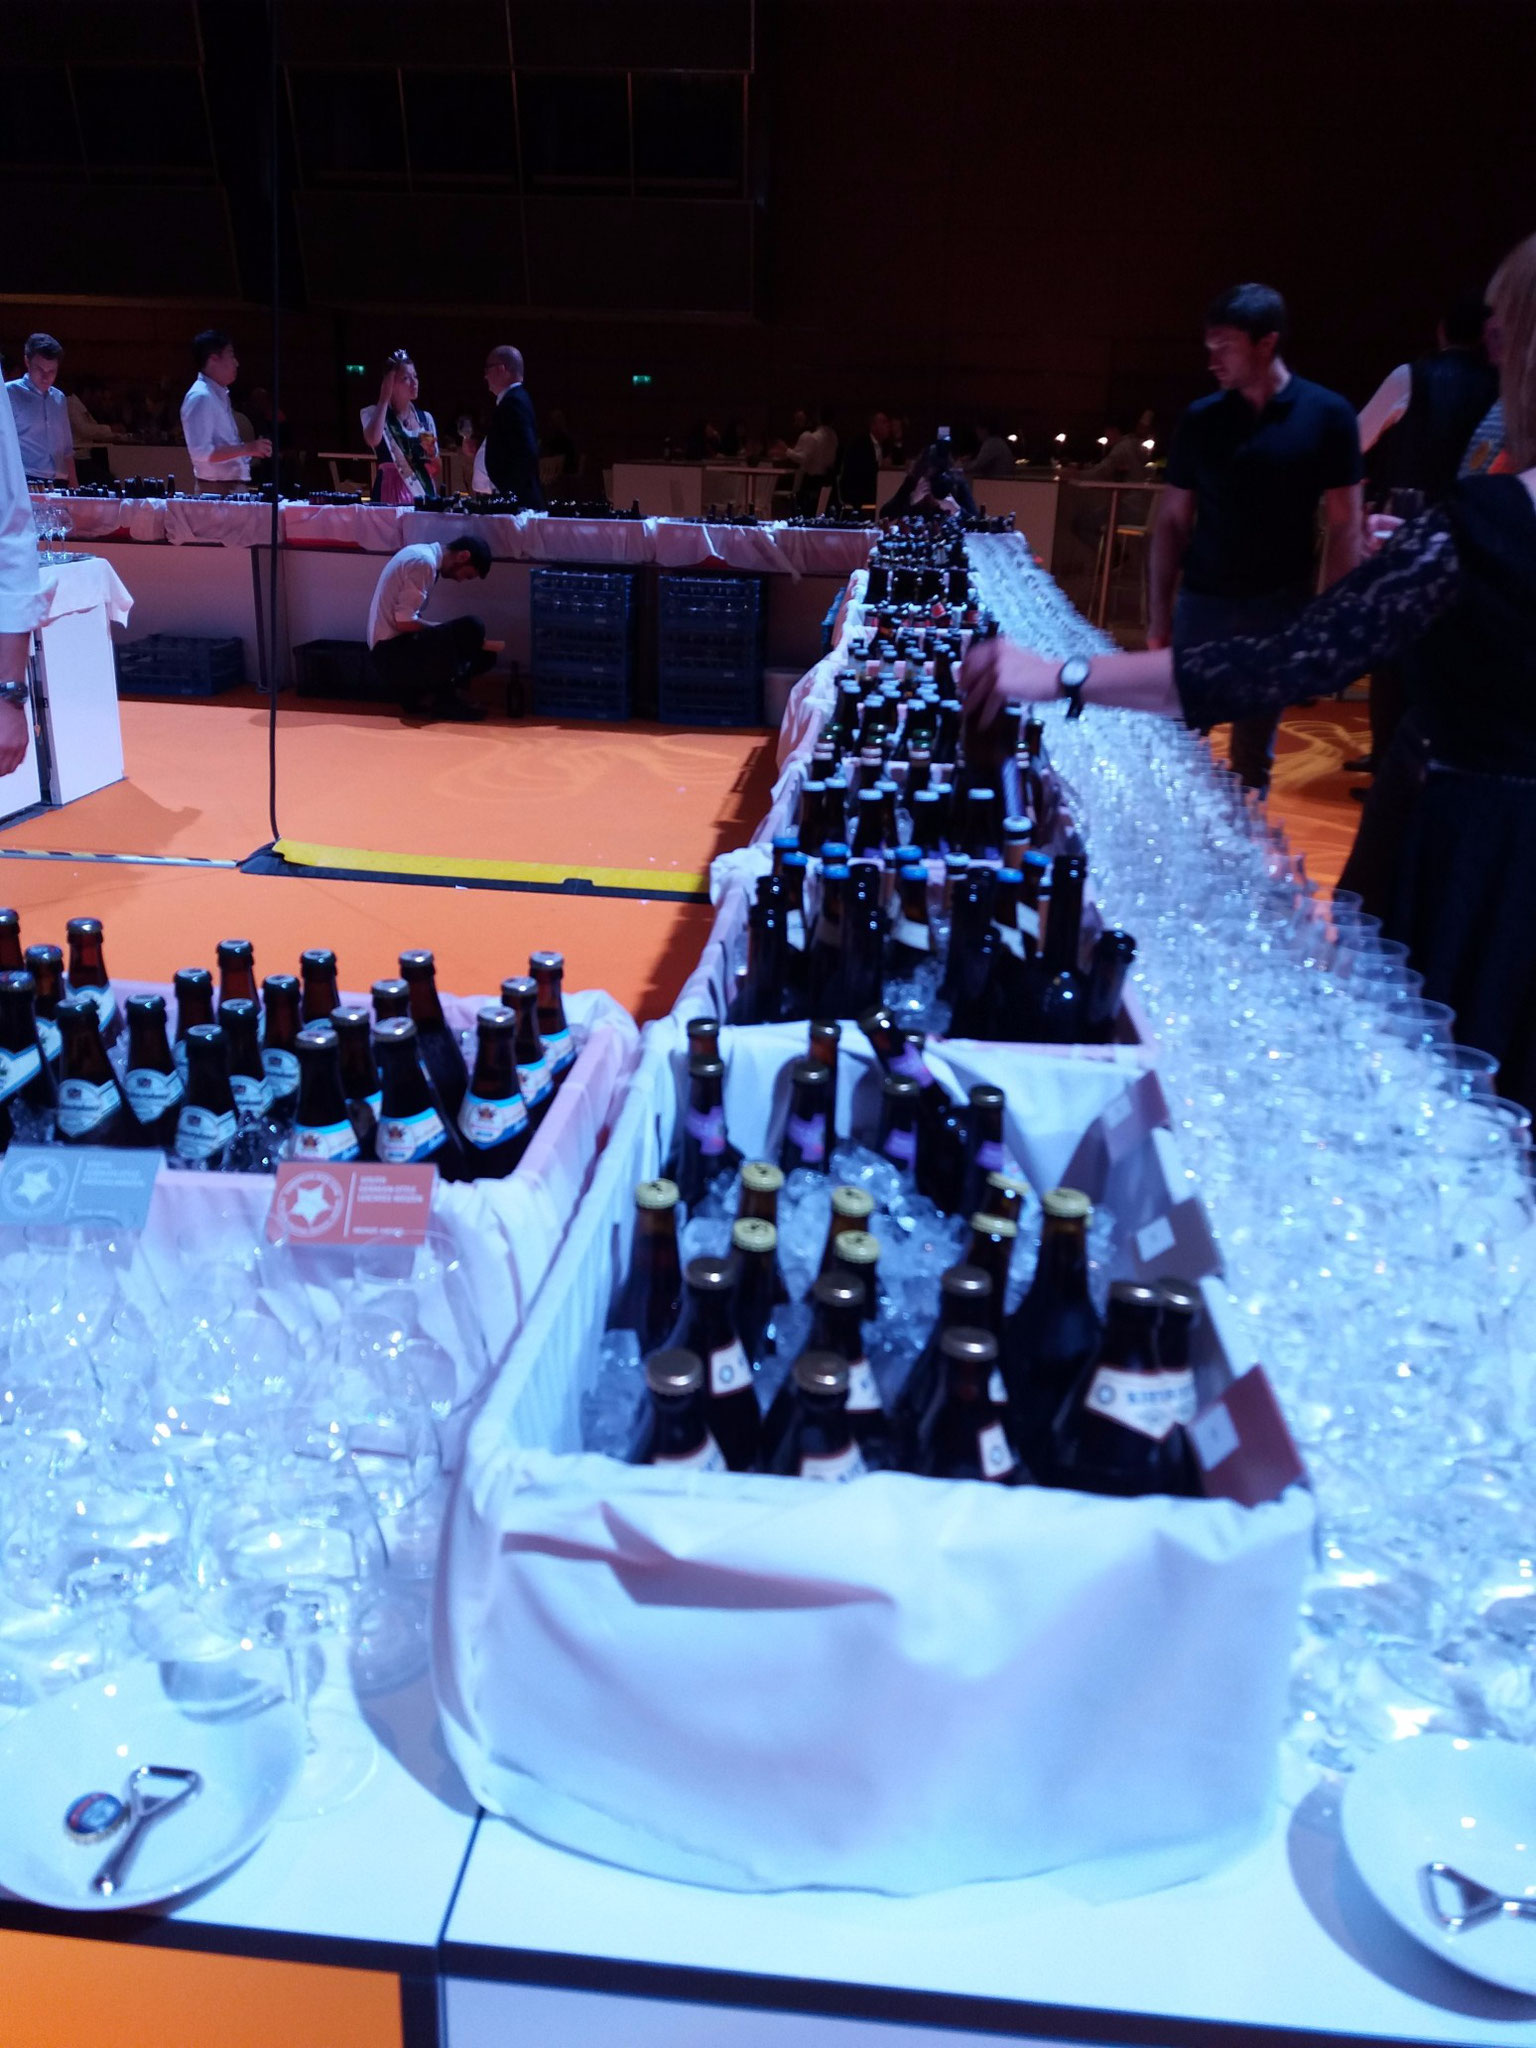 Who got the chance to be there, could try over 60 kinds of beers: all of them were somehow the winners!